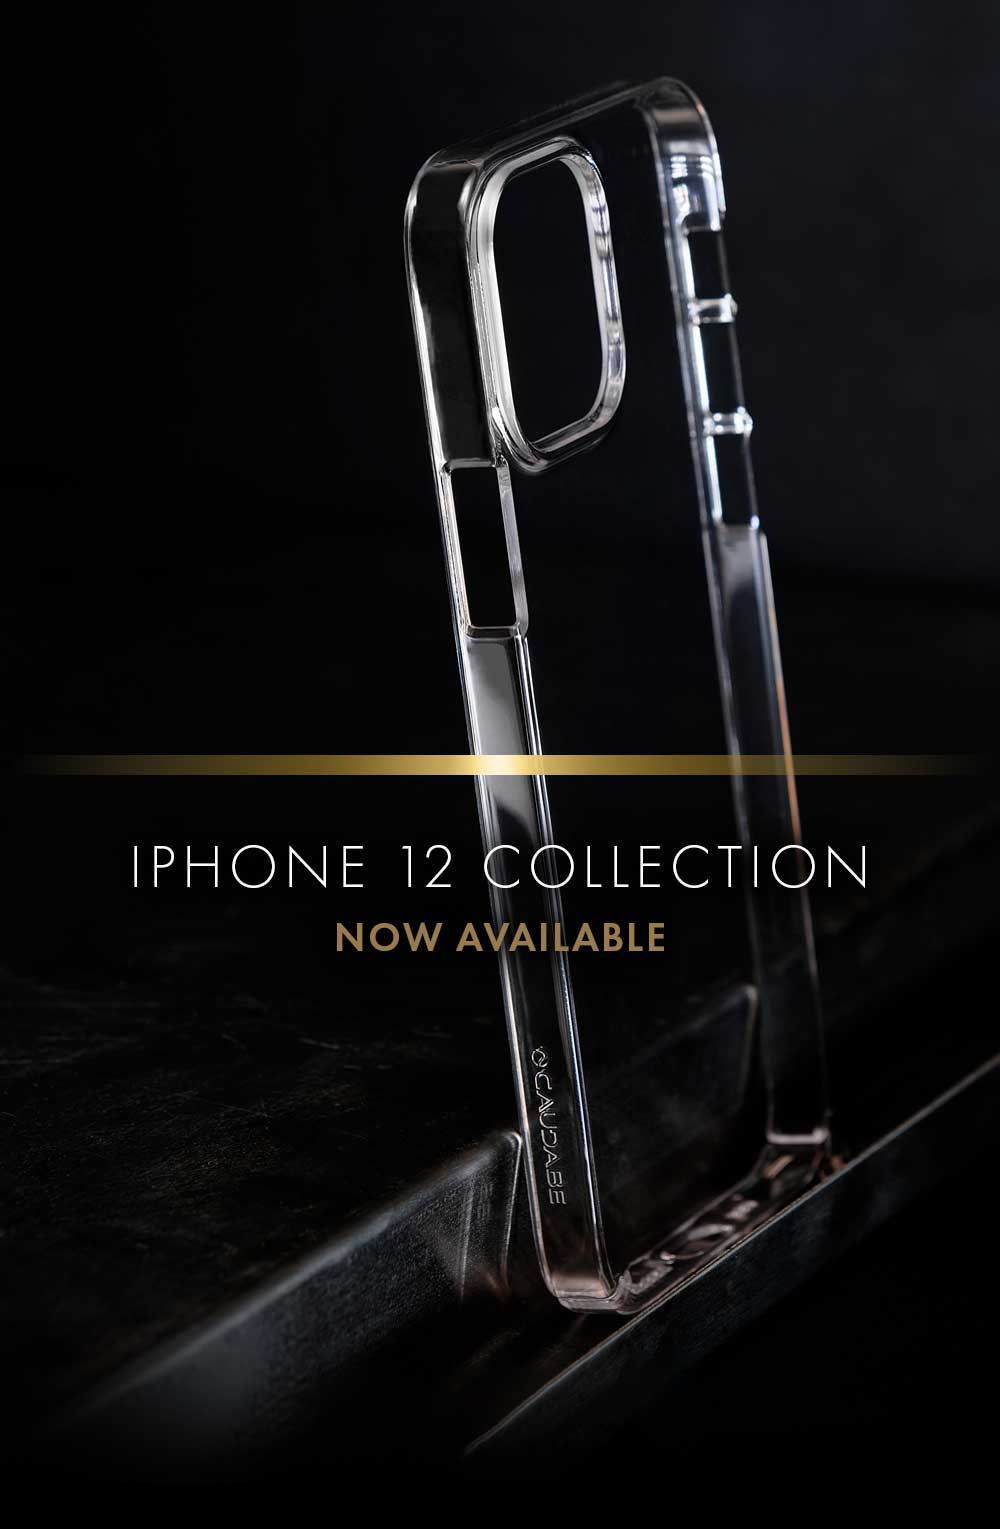 iPhone 12 collection